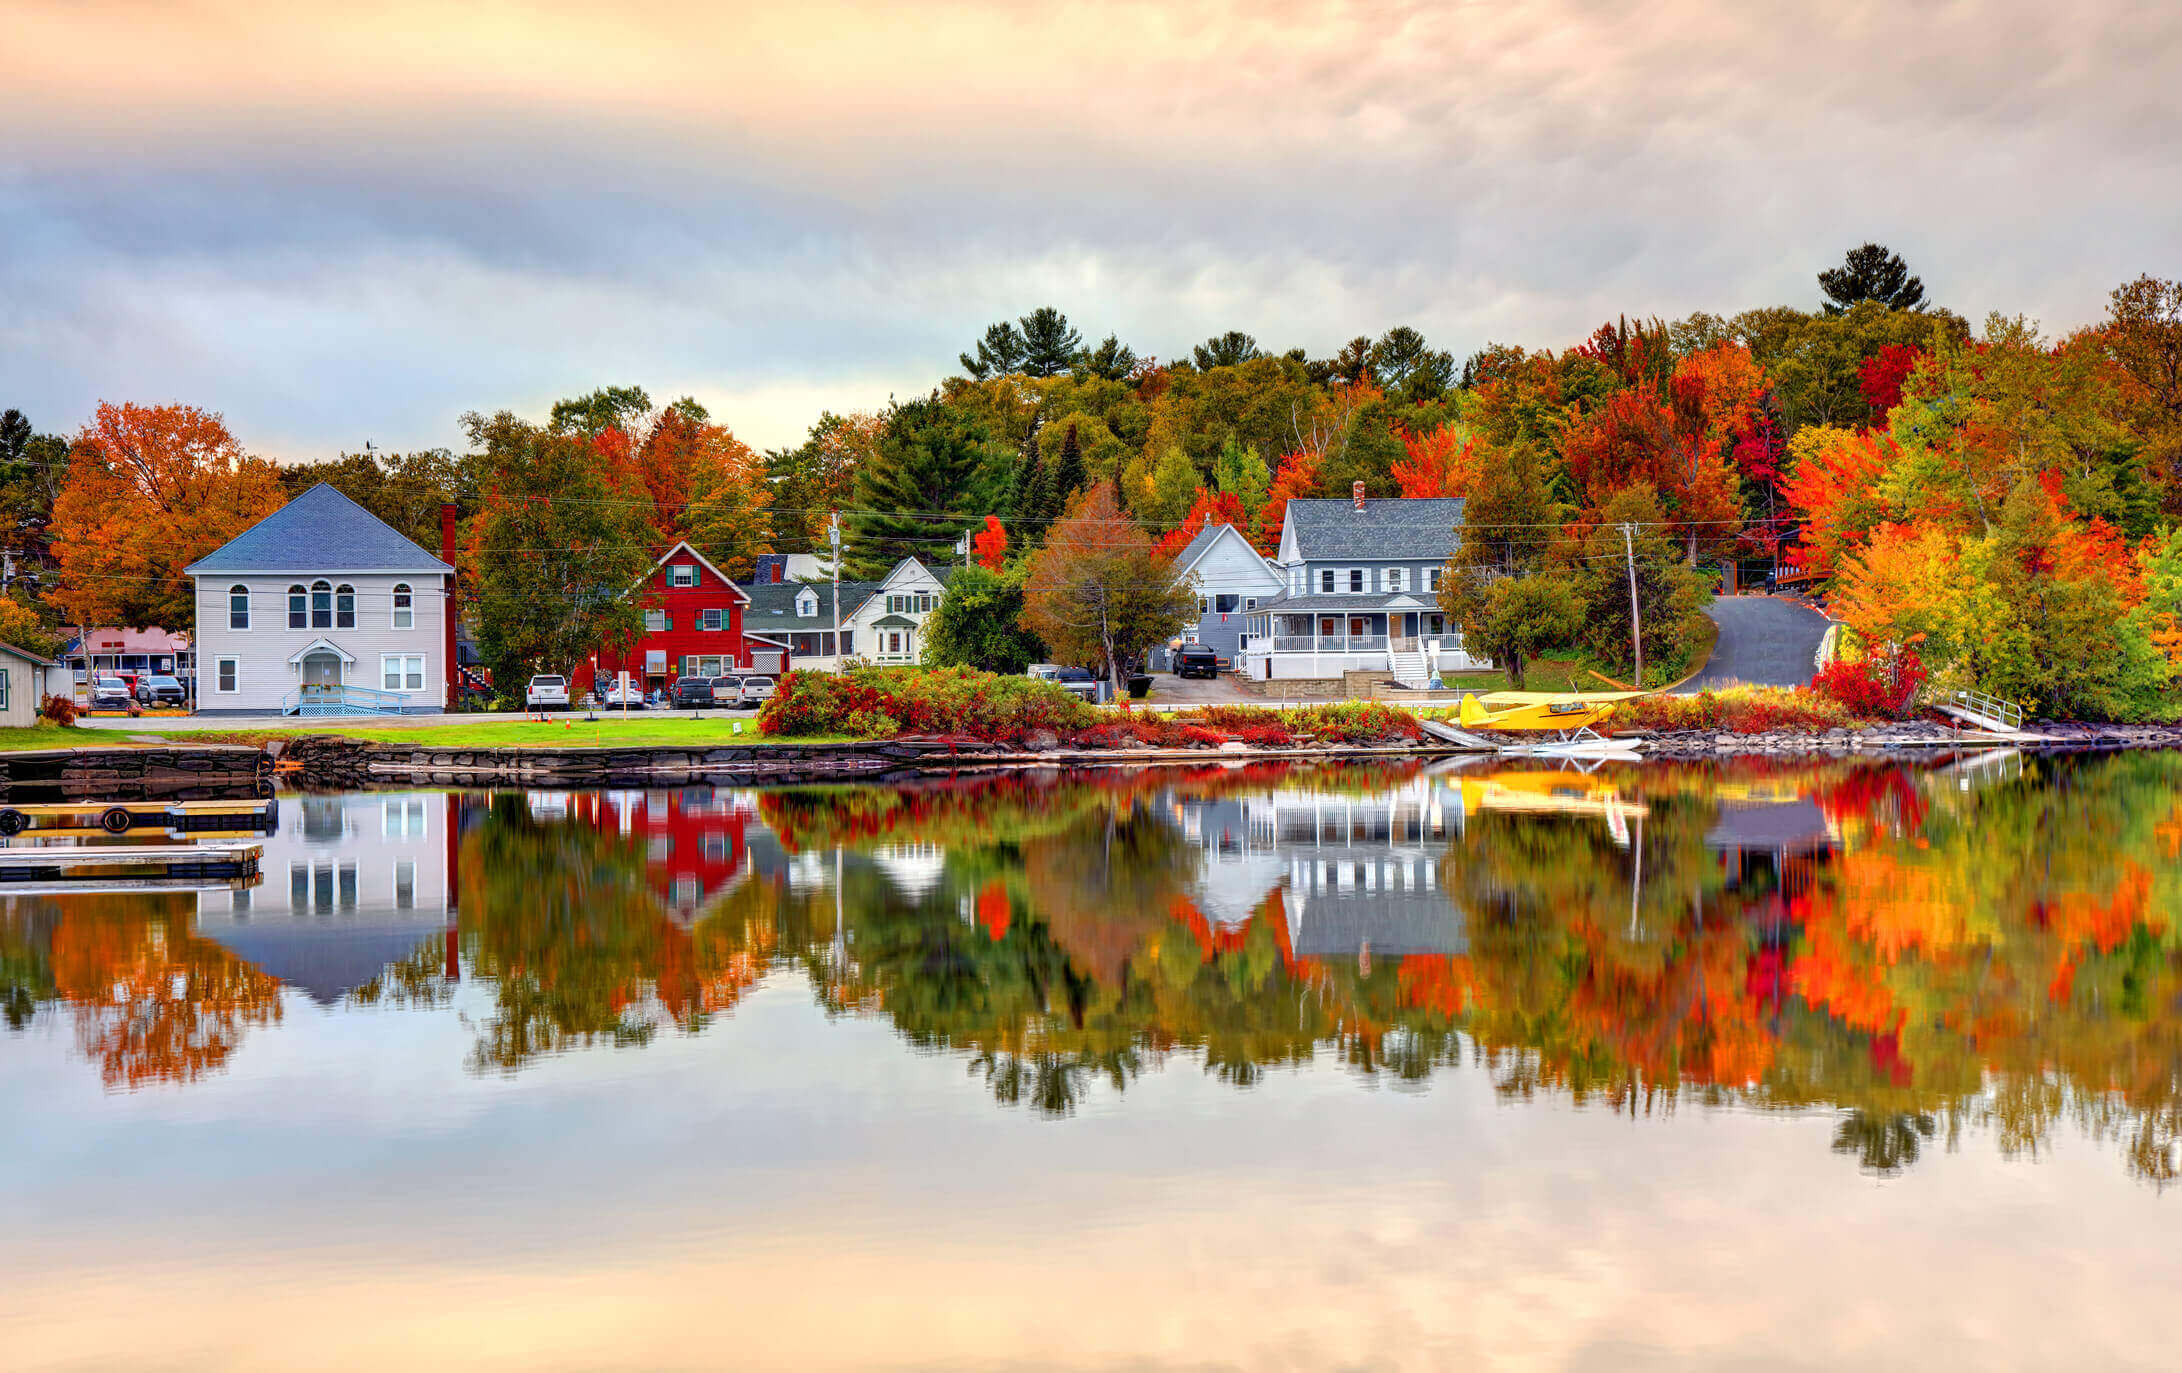 Homes on the edge of a lake in fall